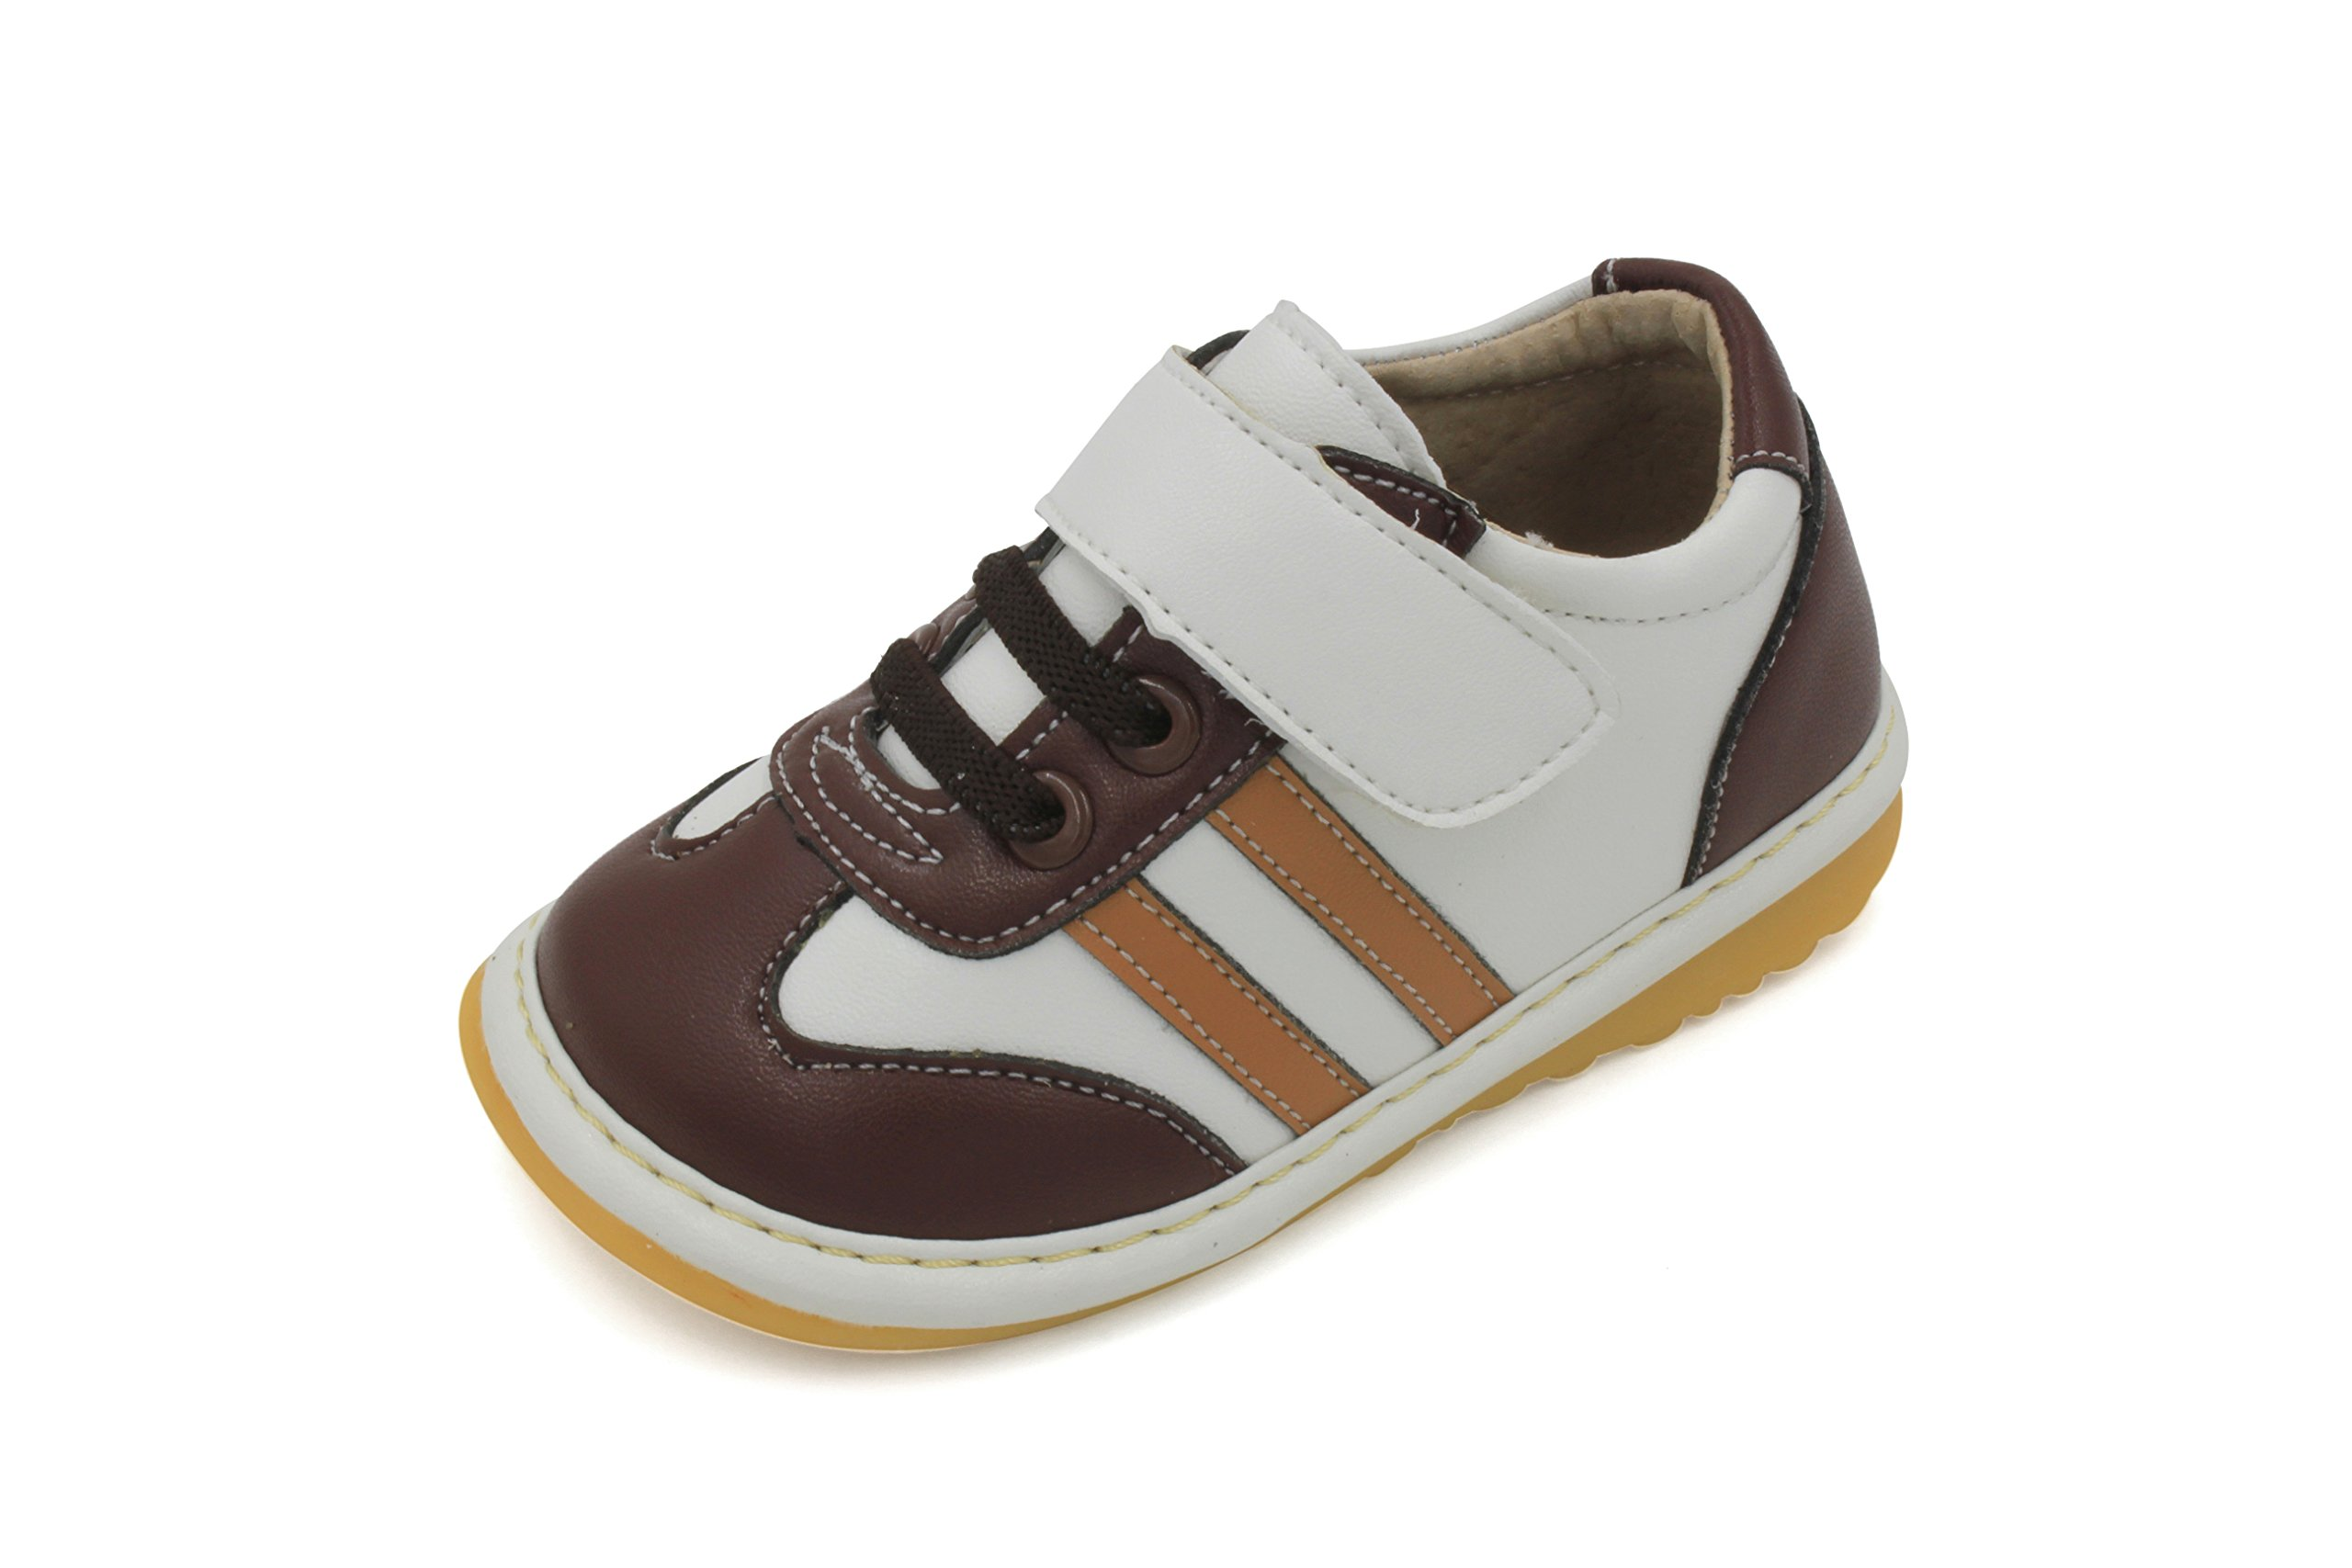 Brown and Tan Boy Sneaker Squeaky Shoes (5)